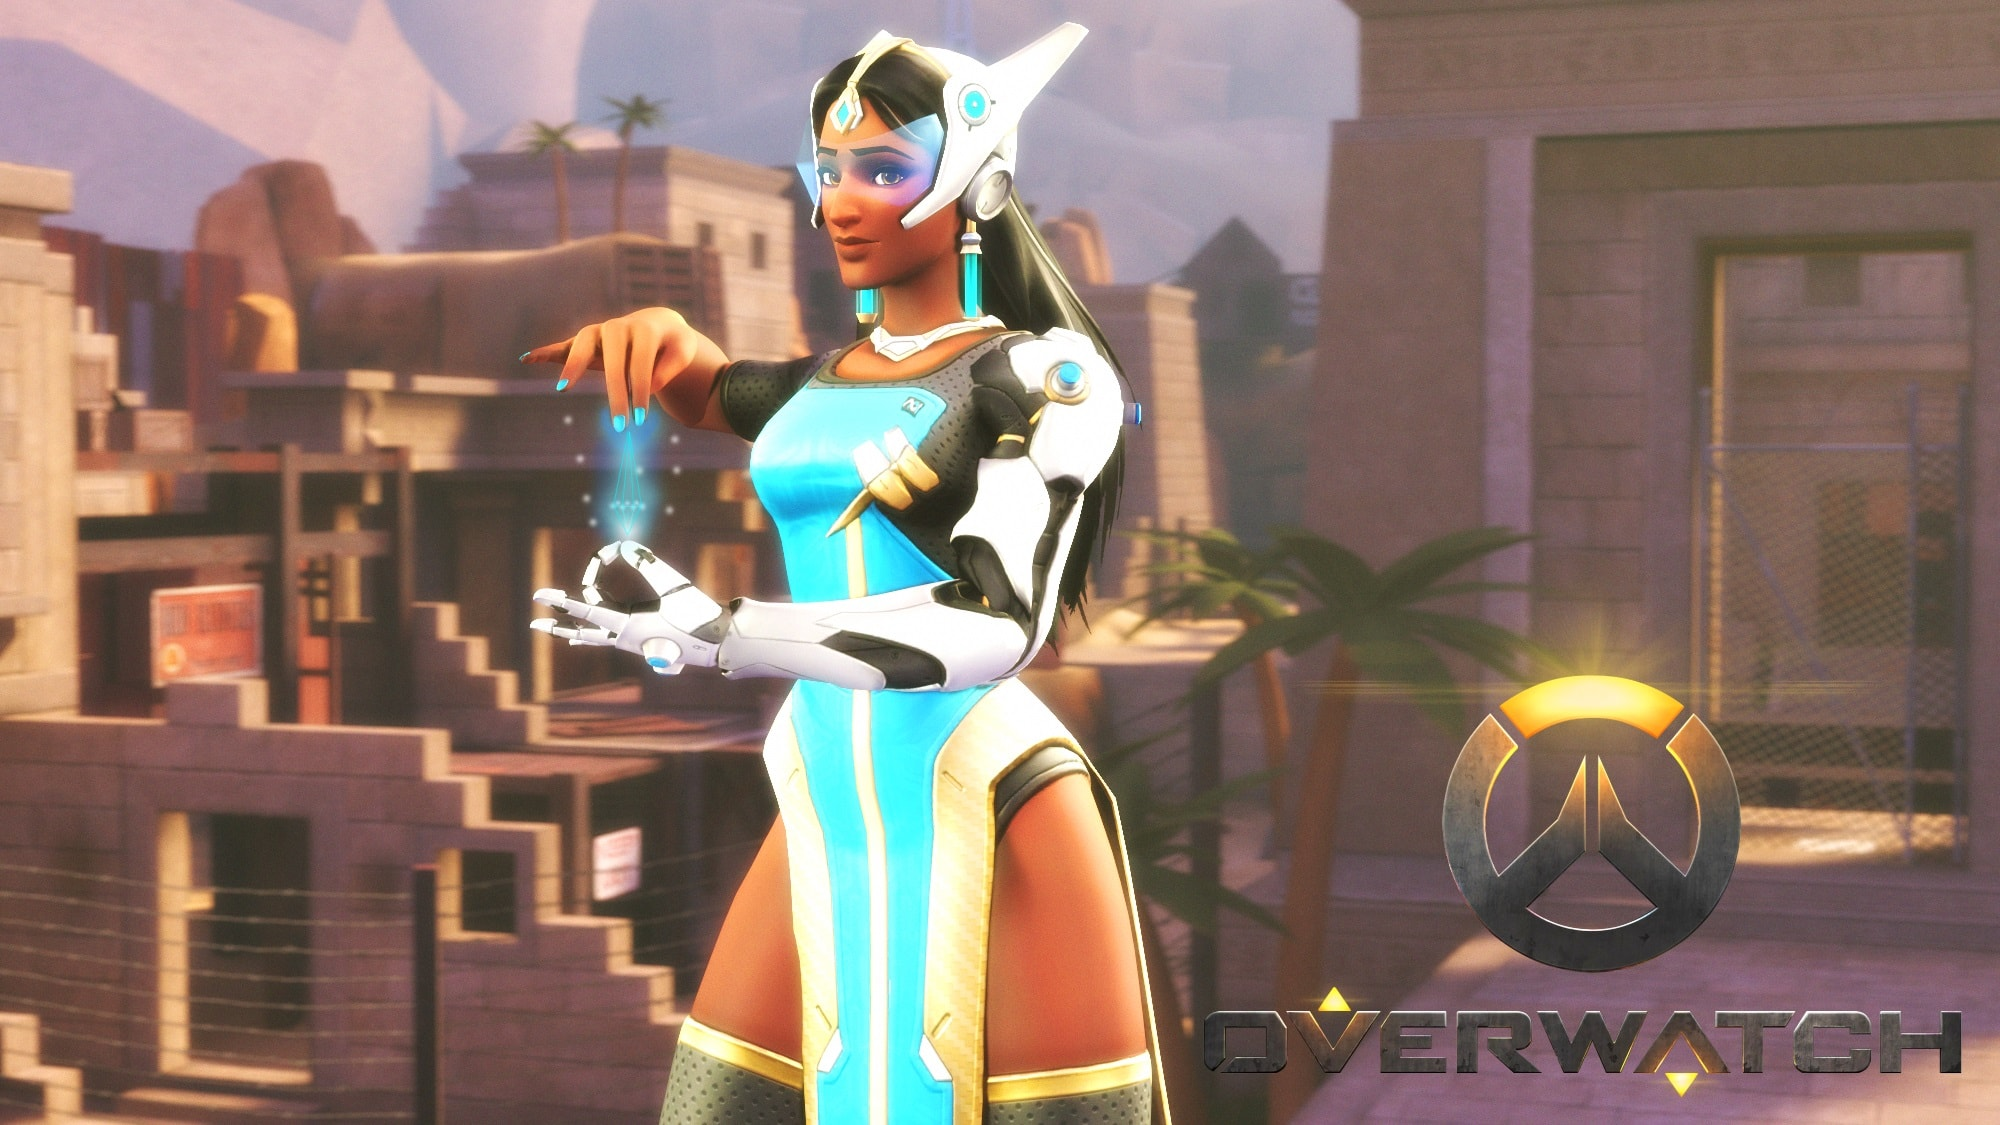 Overwatch : Symmetra Background